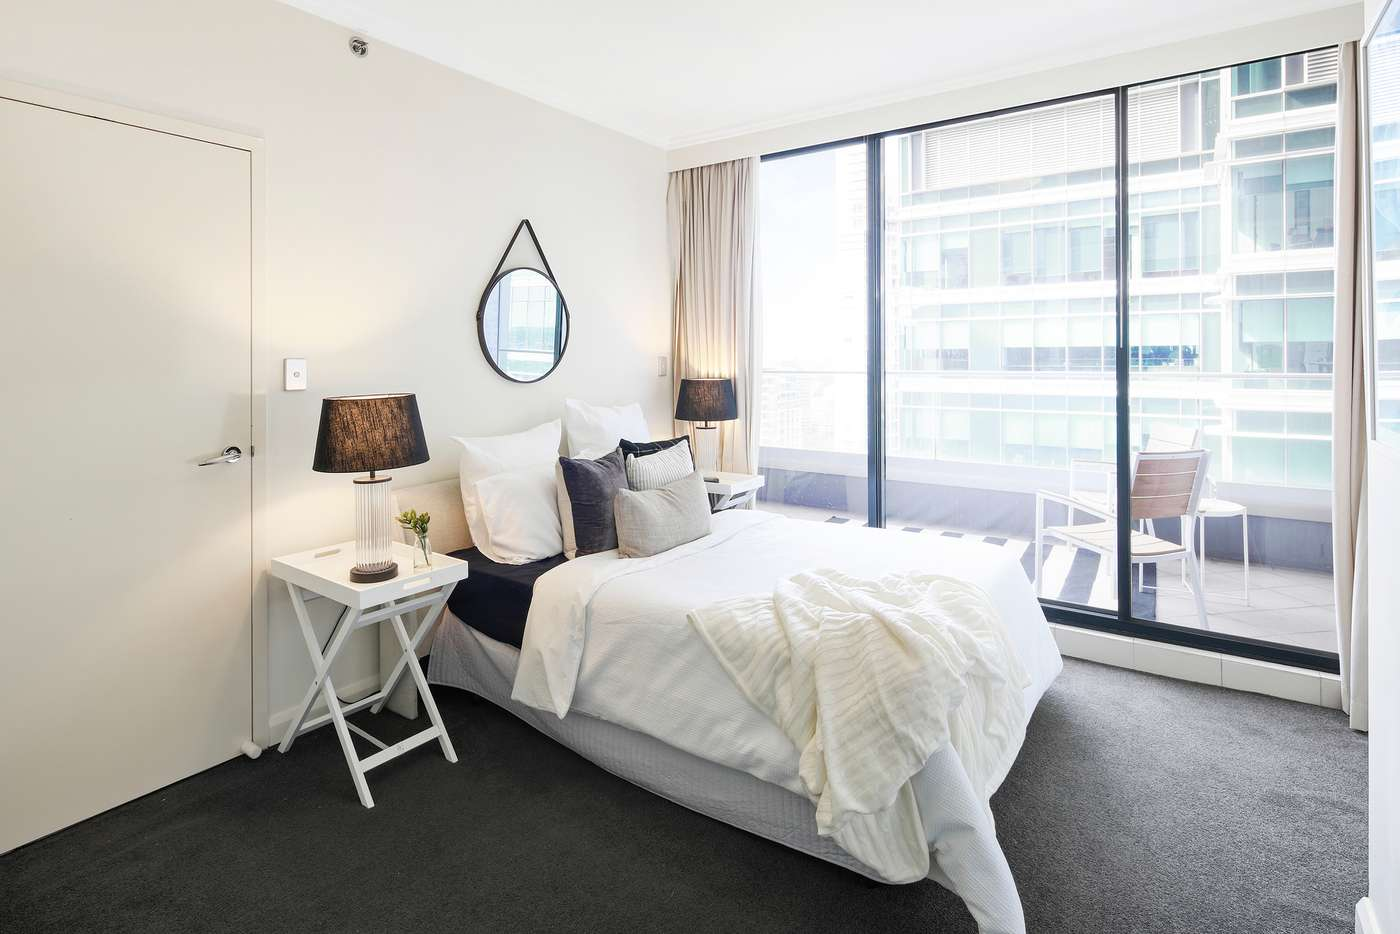 Fifth view of Homely apartment listing, 3603/91 Liverpool Street, Sydney NSW 2000